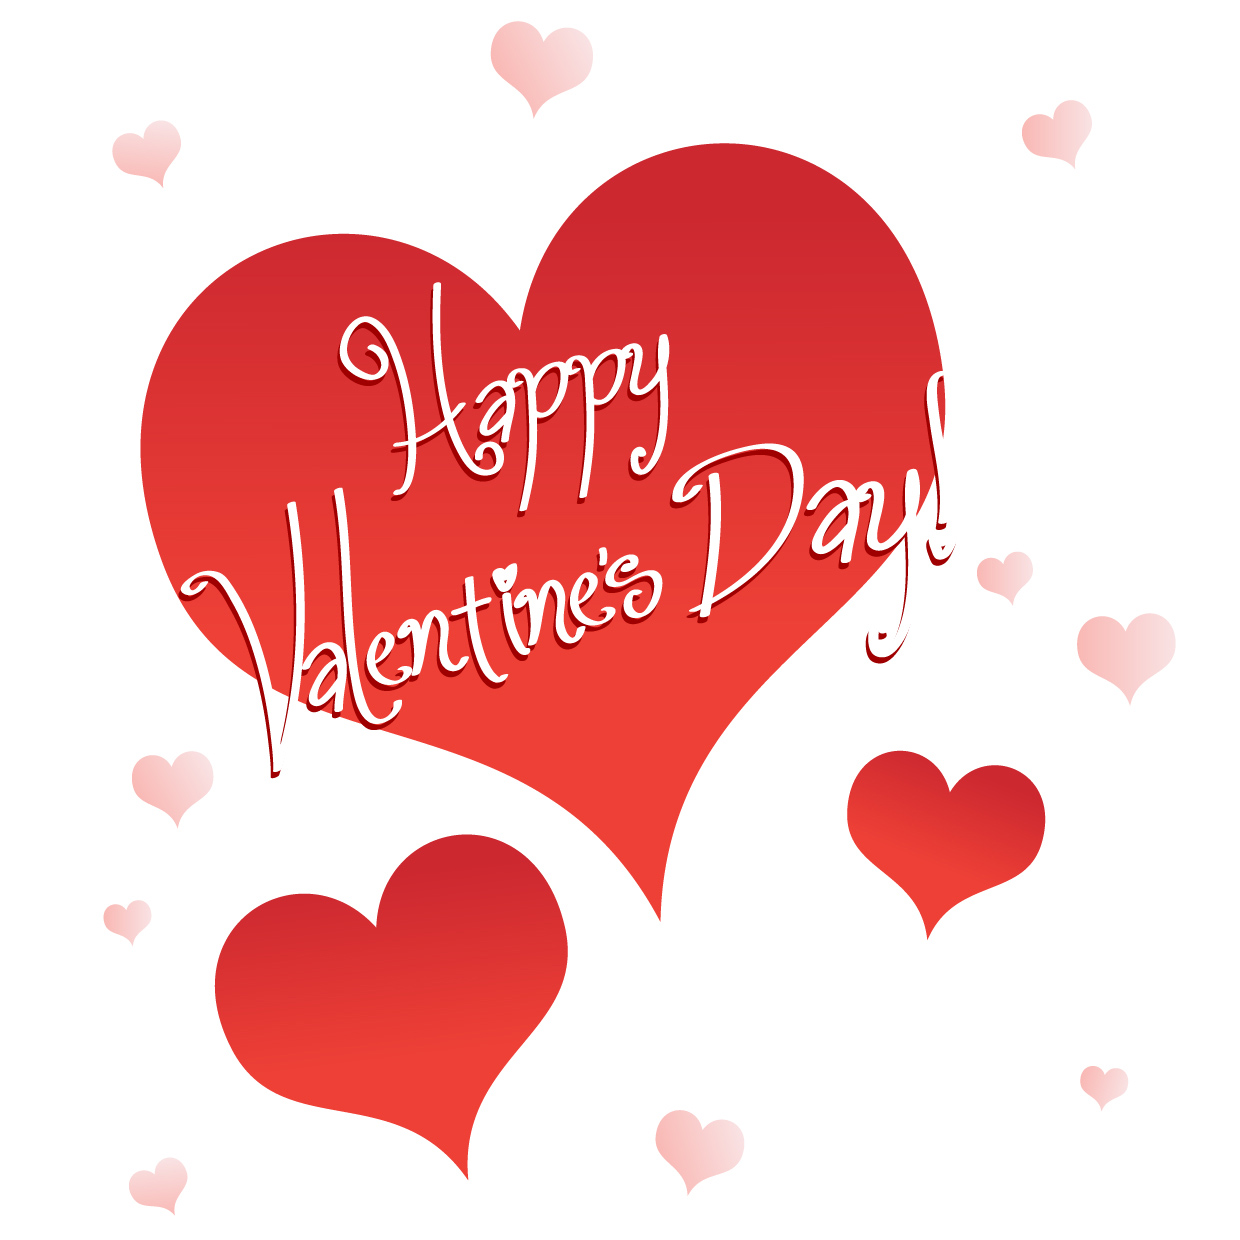 Happy valentines day clip art - Valentines Day Clipart